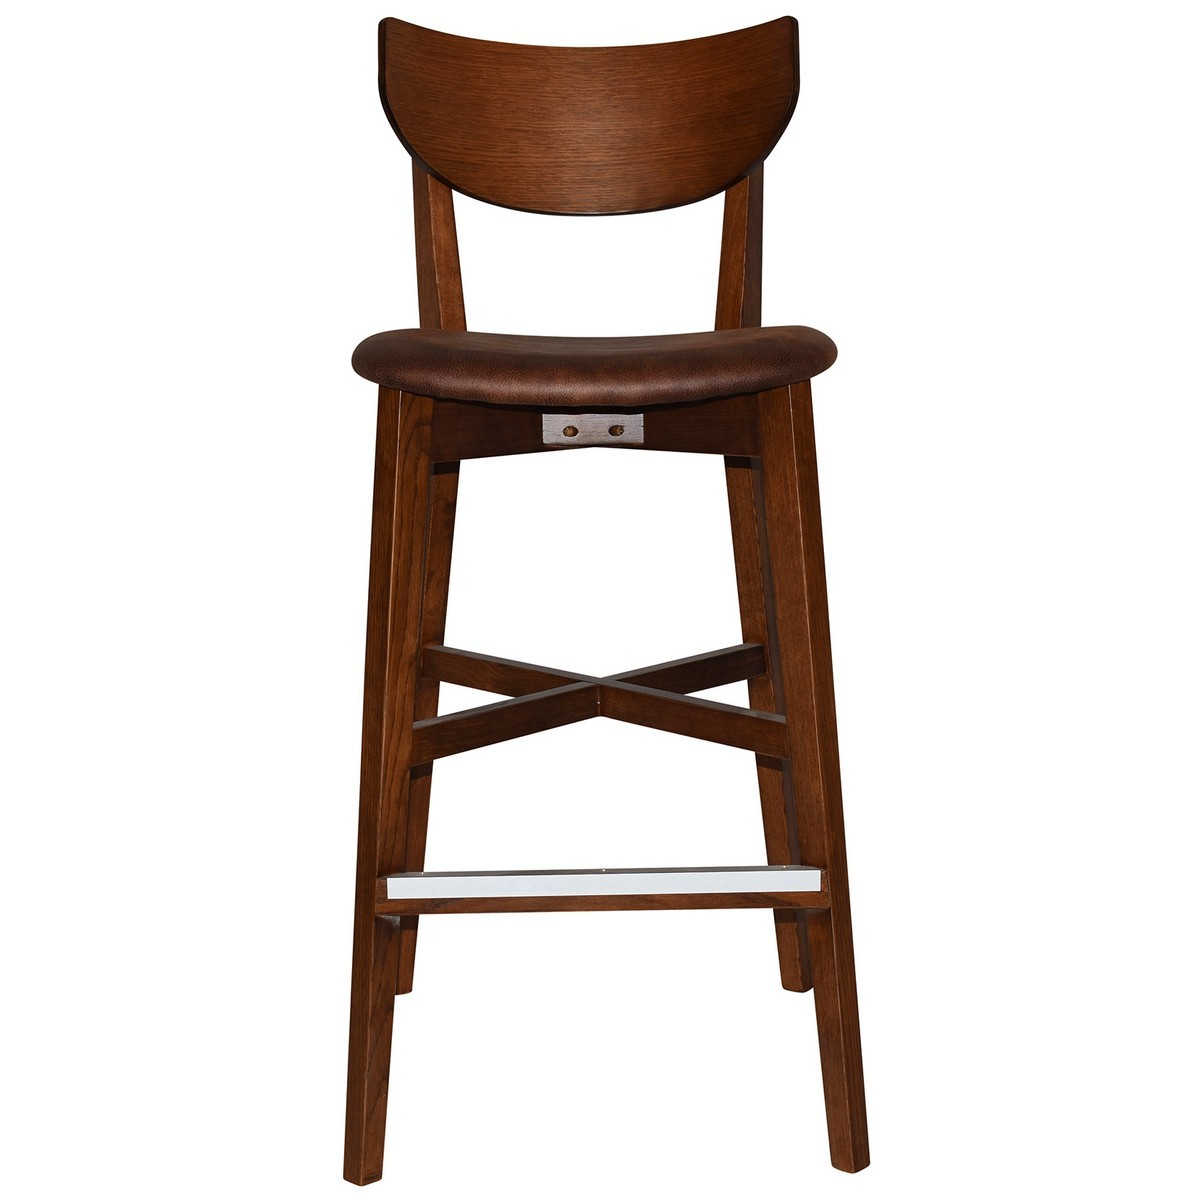 Rialto Commercial Grade Oak Timber Bar Stool, Fabric Seat, Bison / Light Walnut